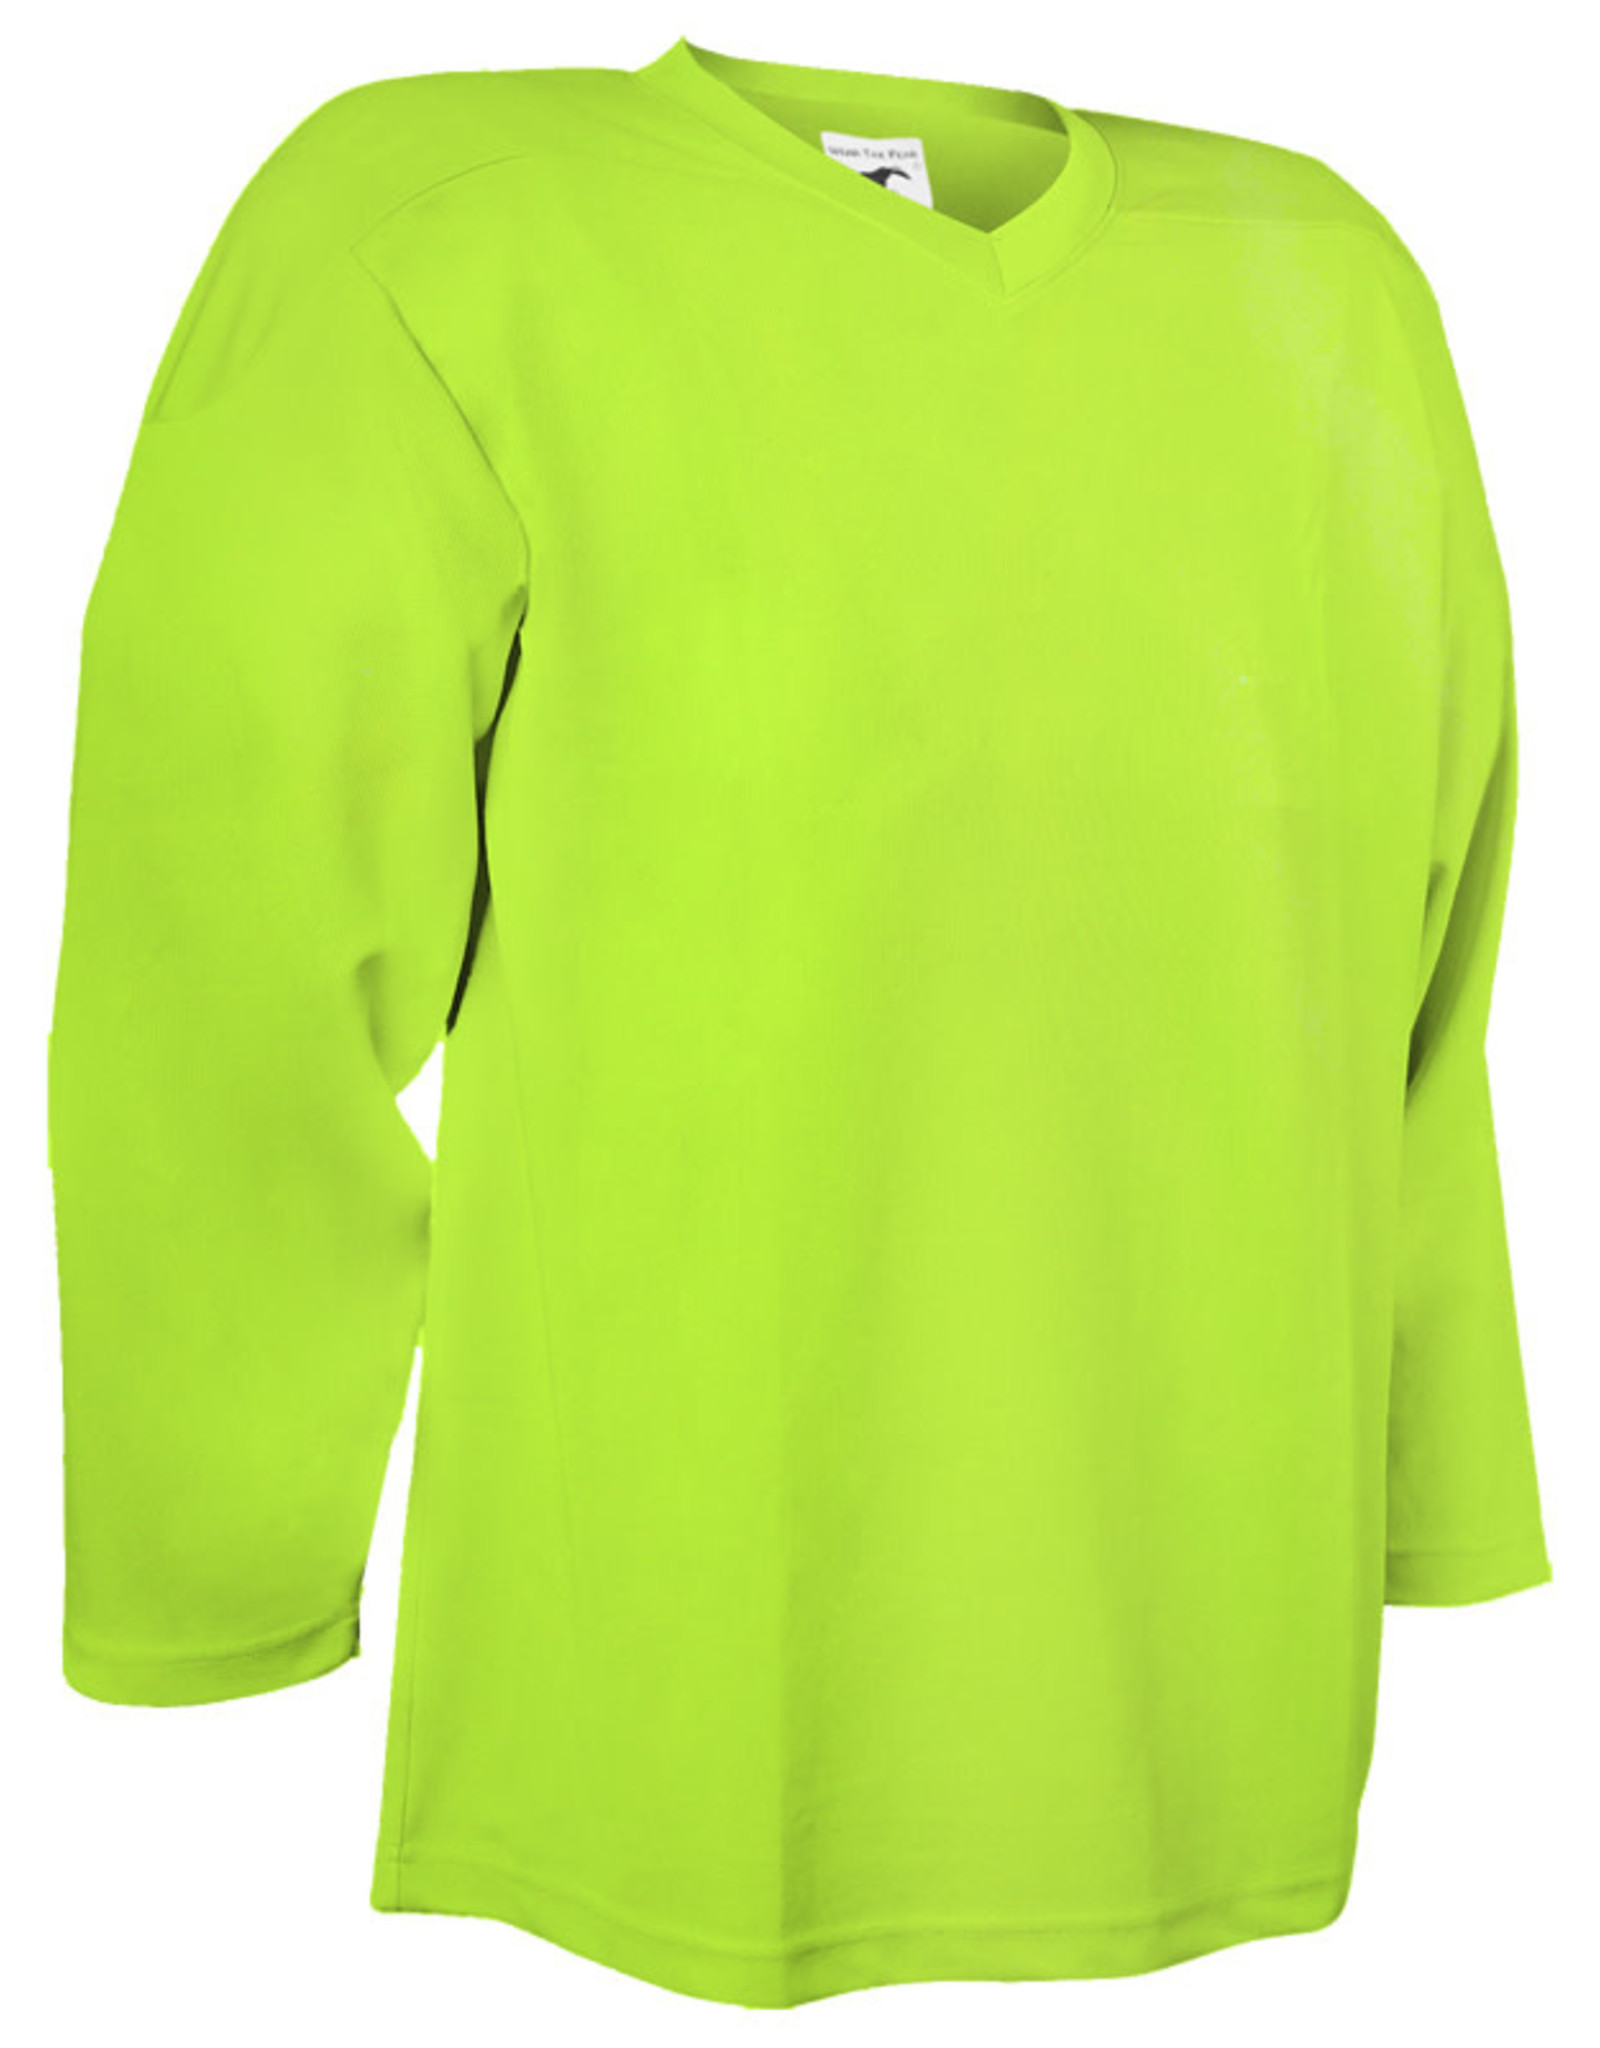 Pear Sox Pear Sox Air Mesh Practice Jersey (ADULT NEON YELLOW)